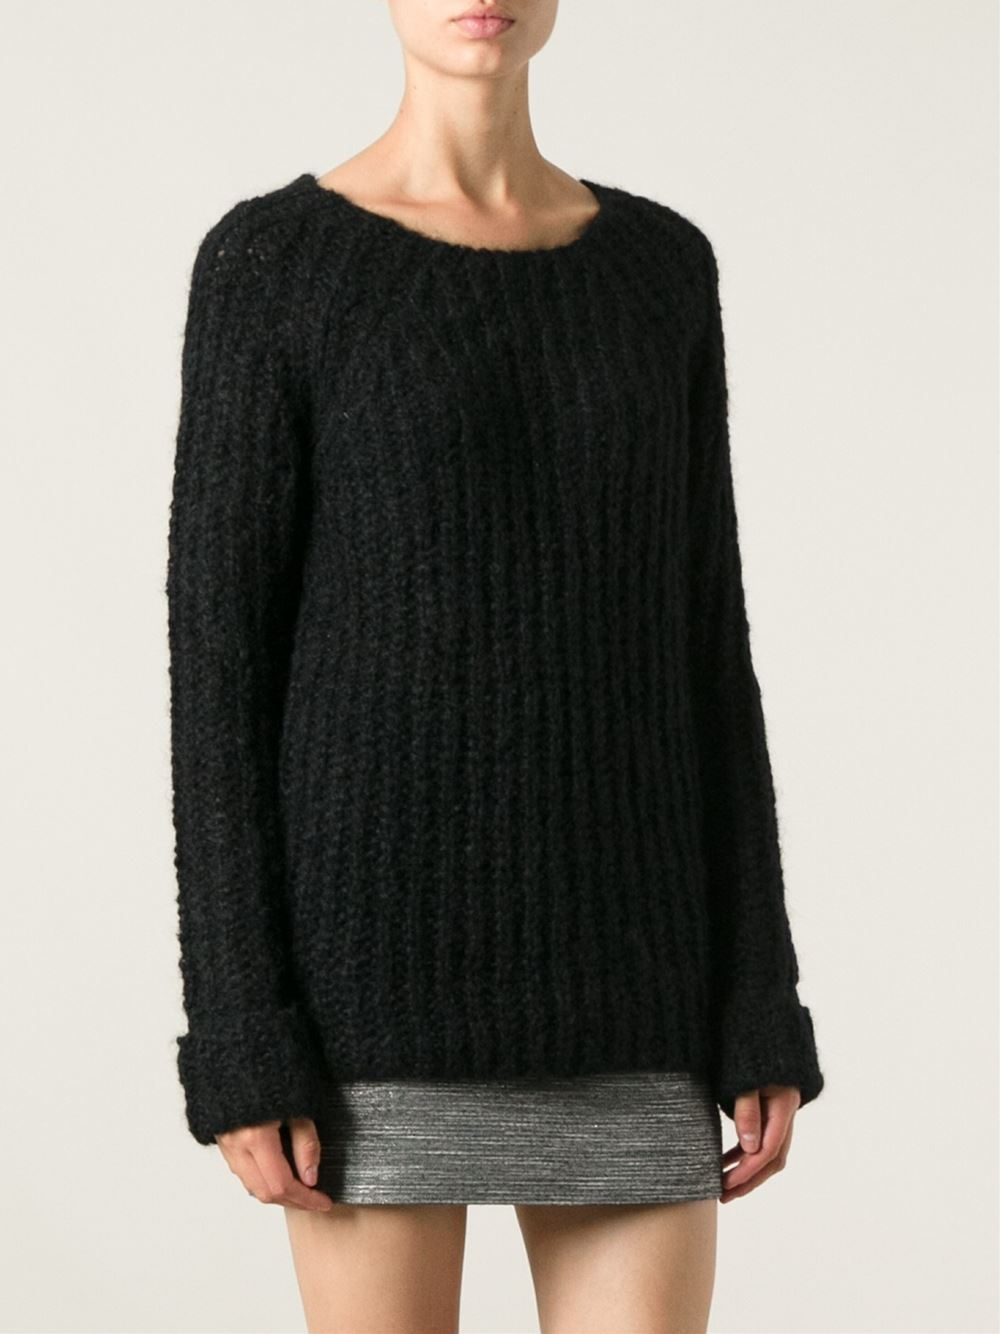 Roberto collina Chunky Knit Sweater in Black | Lyst